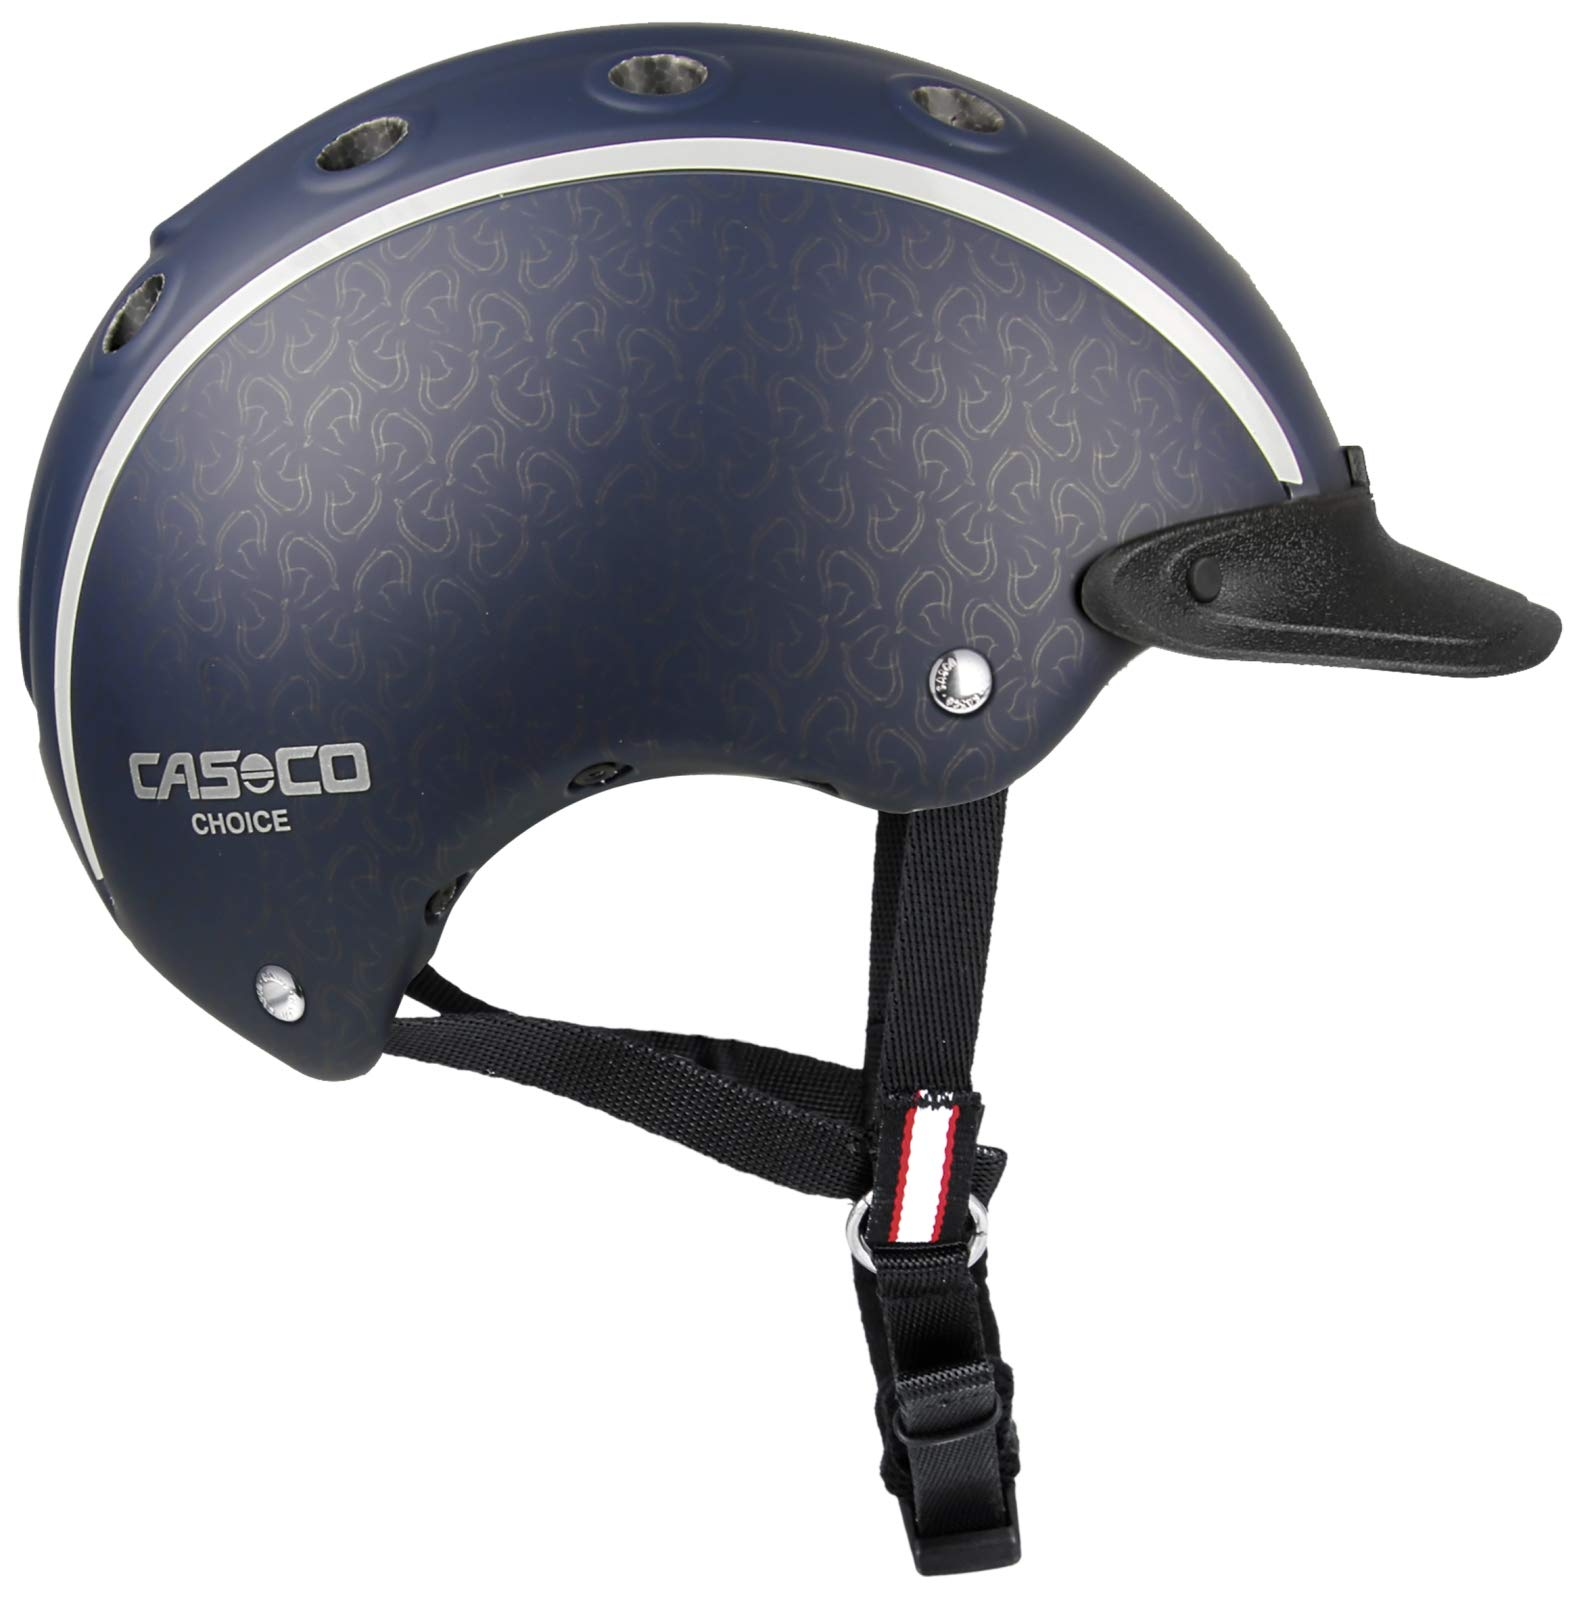 CASCO Reithelm VG1 Choice